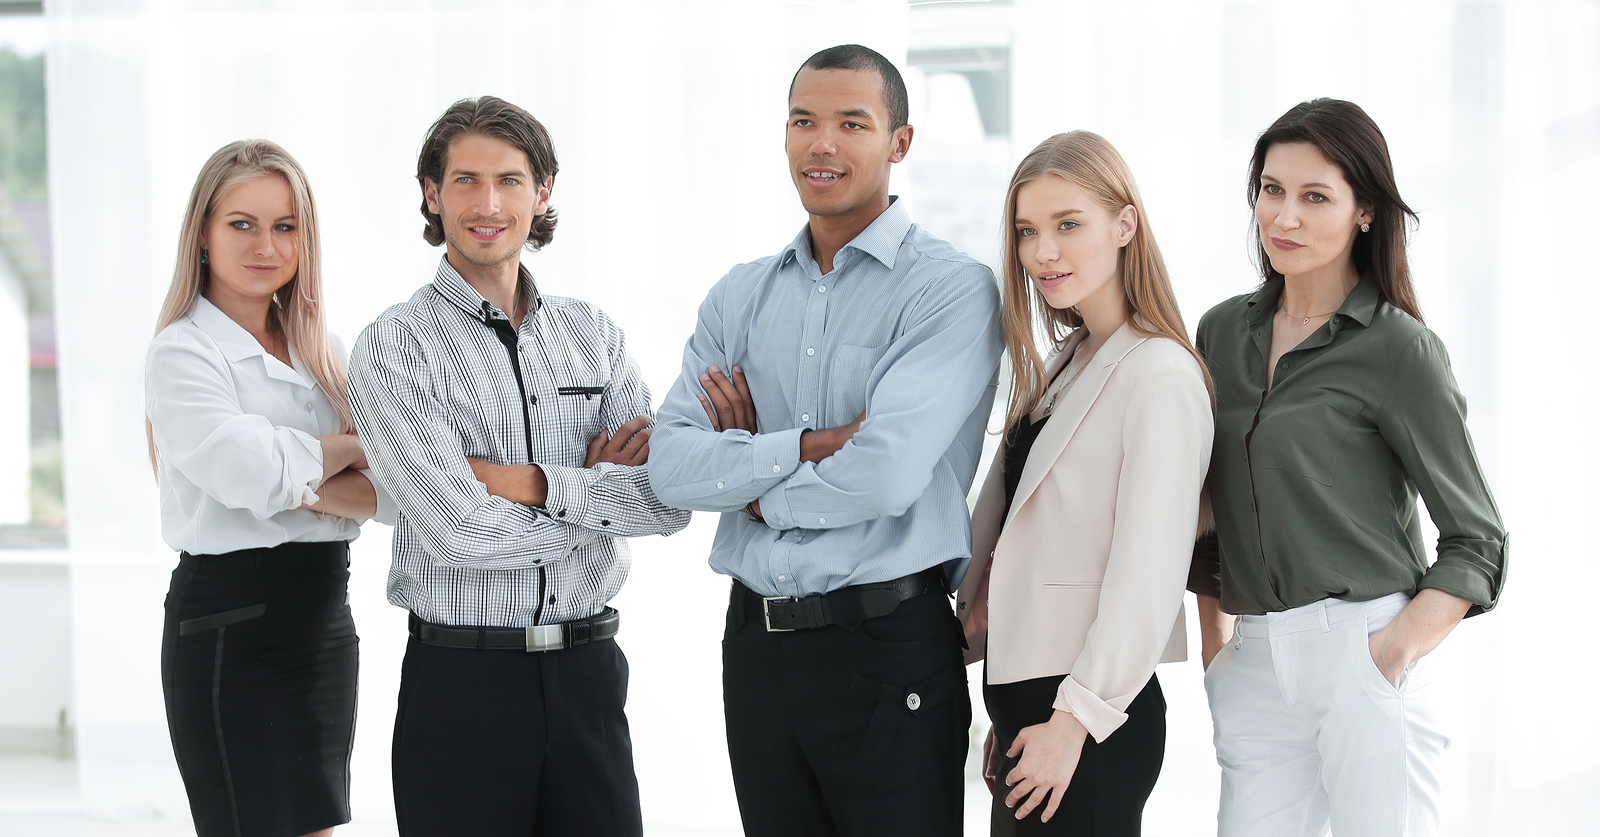 Employee Retention - Workplace Trends You Might Want to Consider